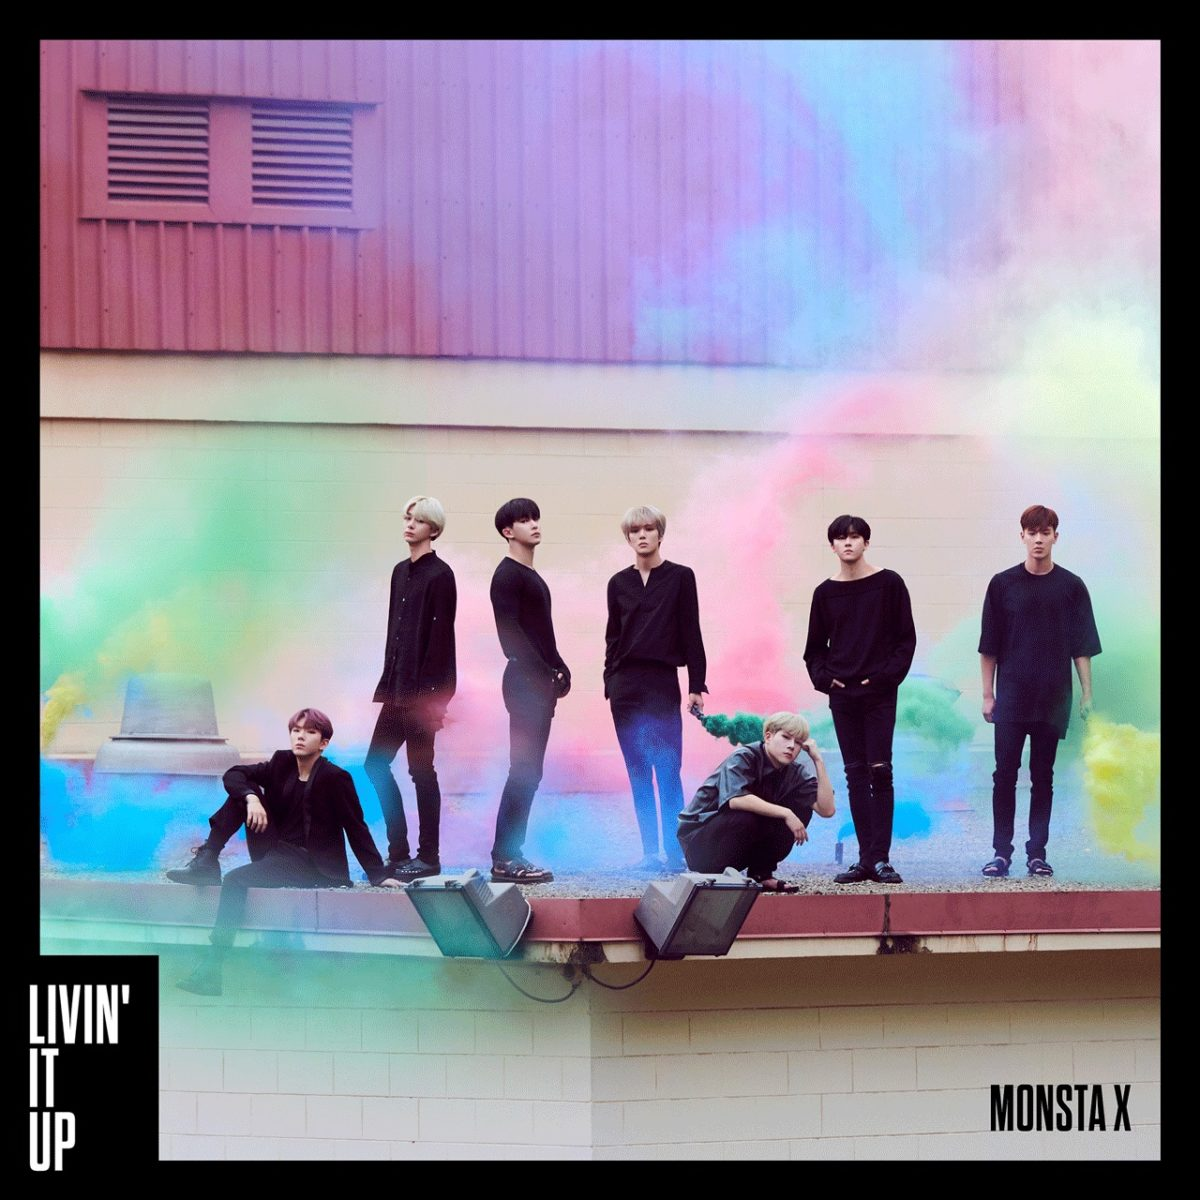 MONSTA X / LIVI'N IT UP